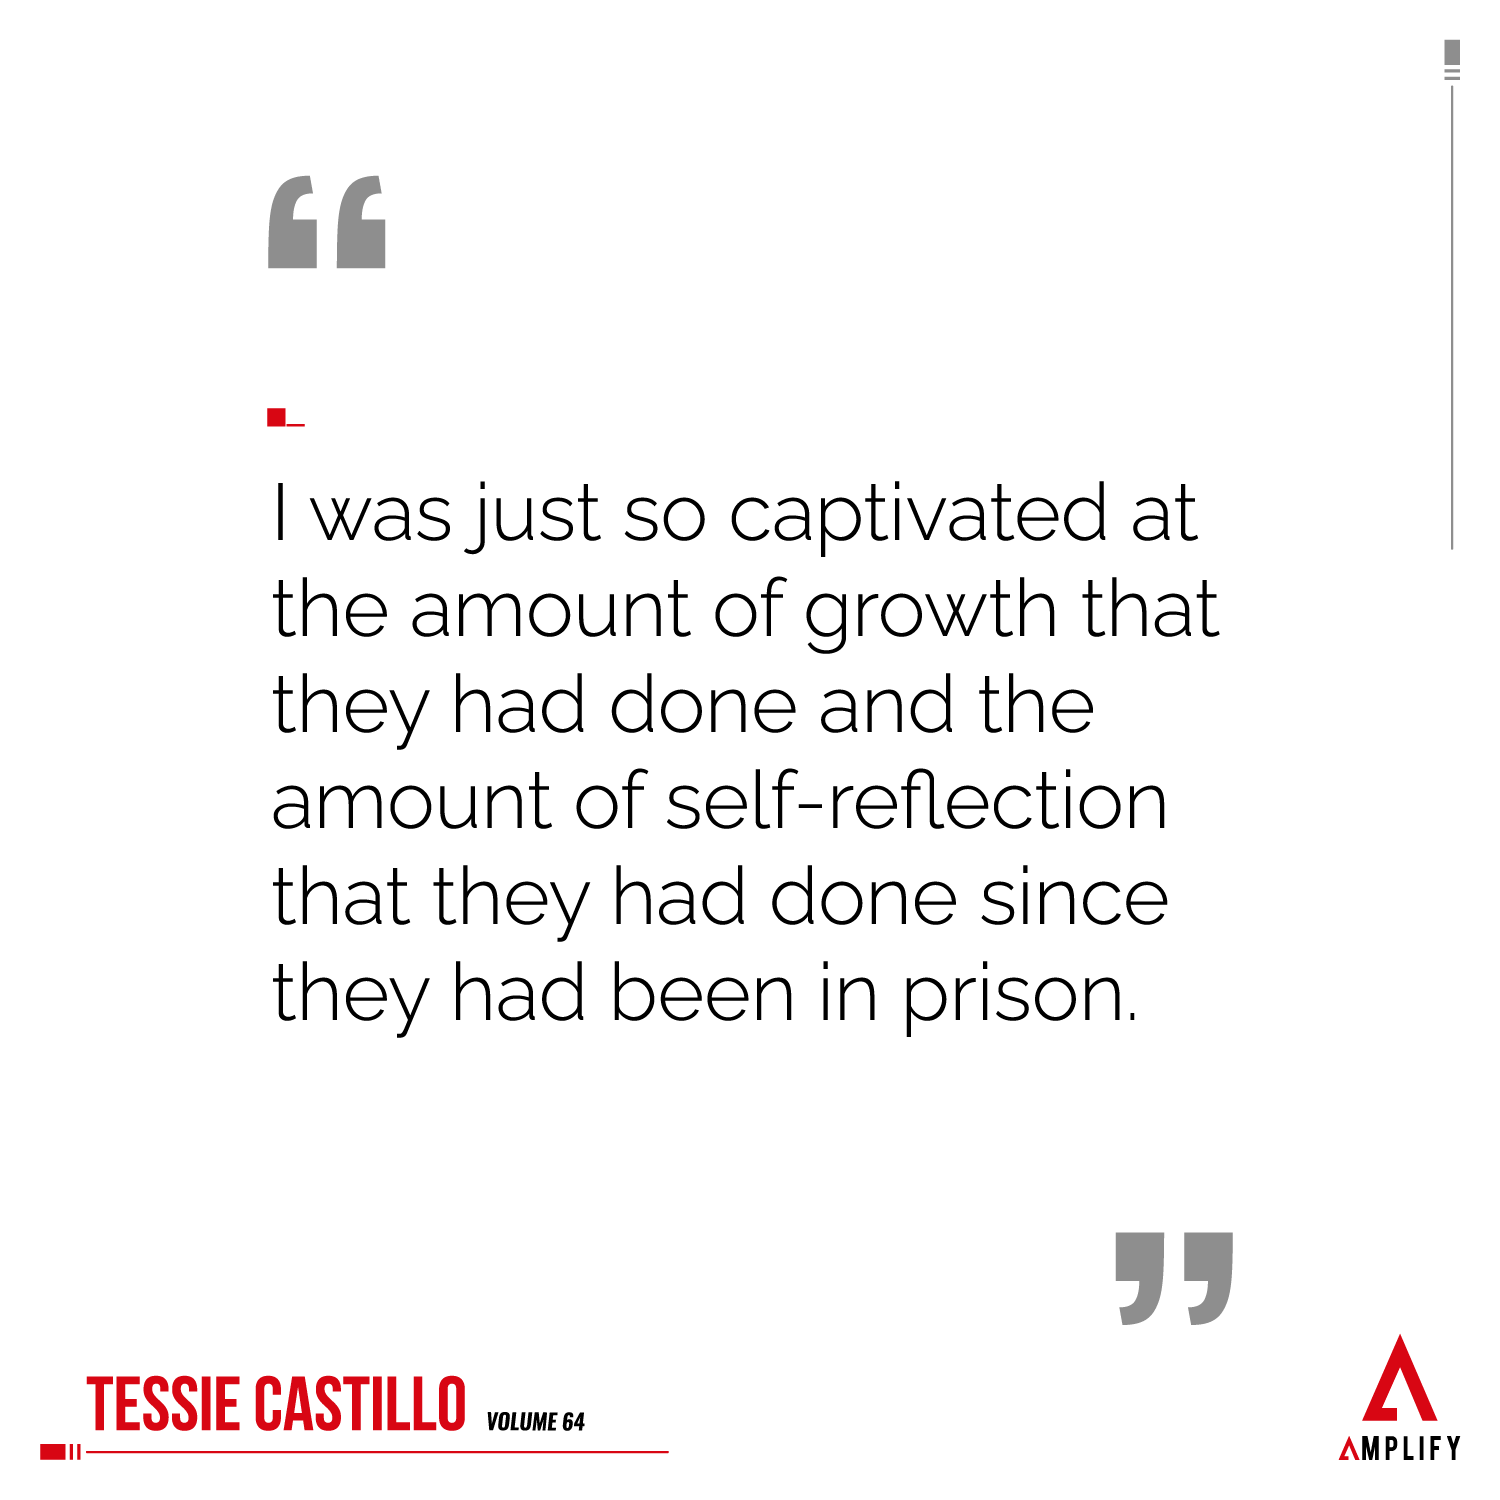 Quote: I was just so captivated at the amount of growth that they had done and the amount of self-reflection that they had done since they had been in prison.